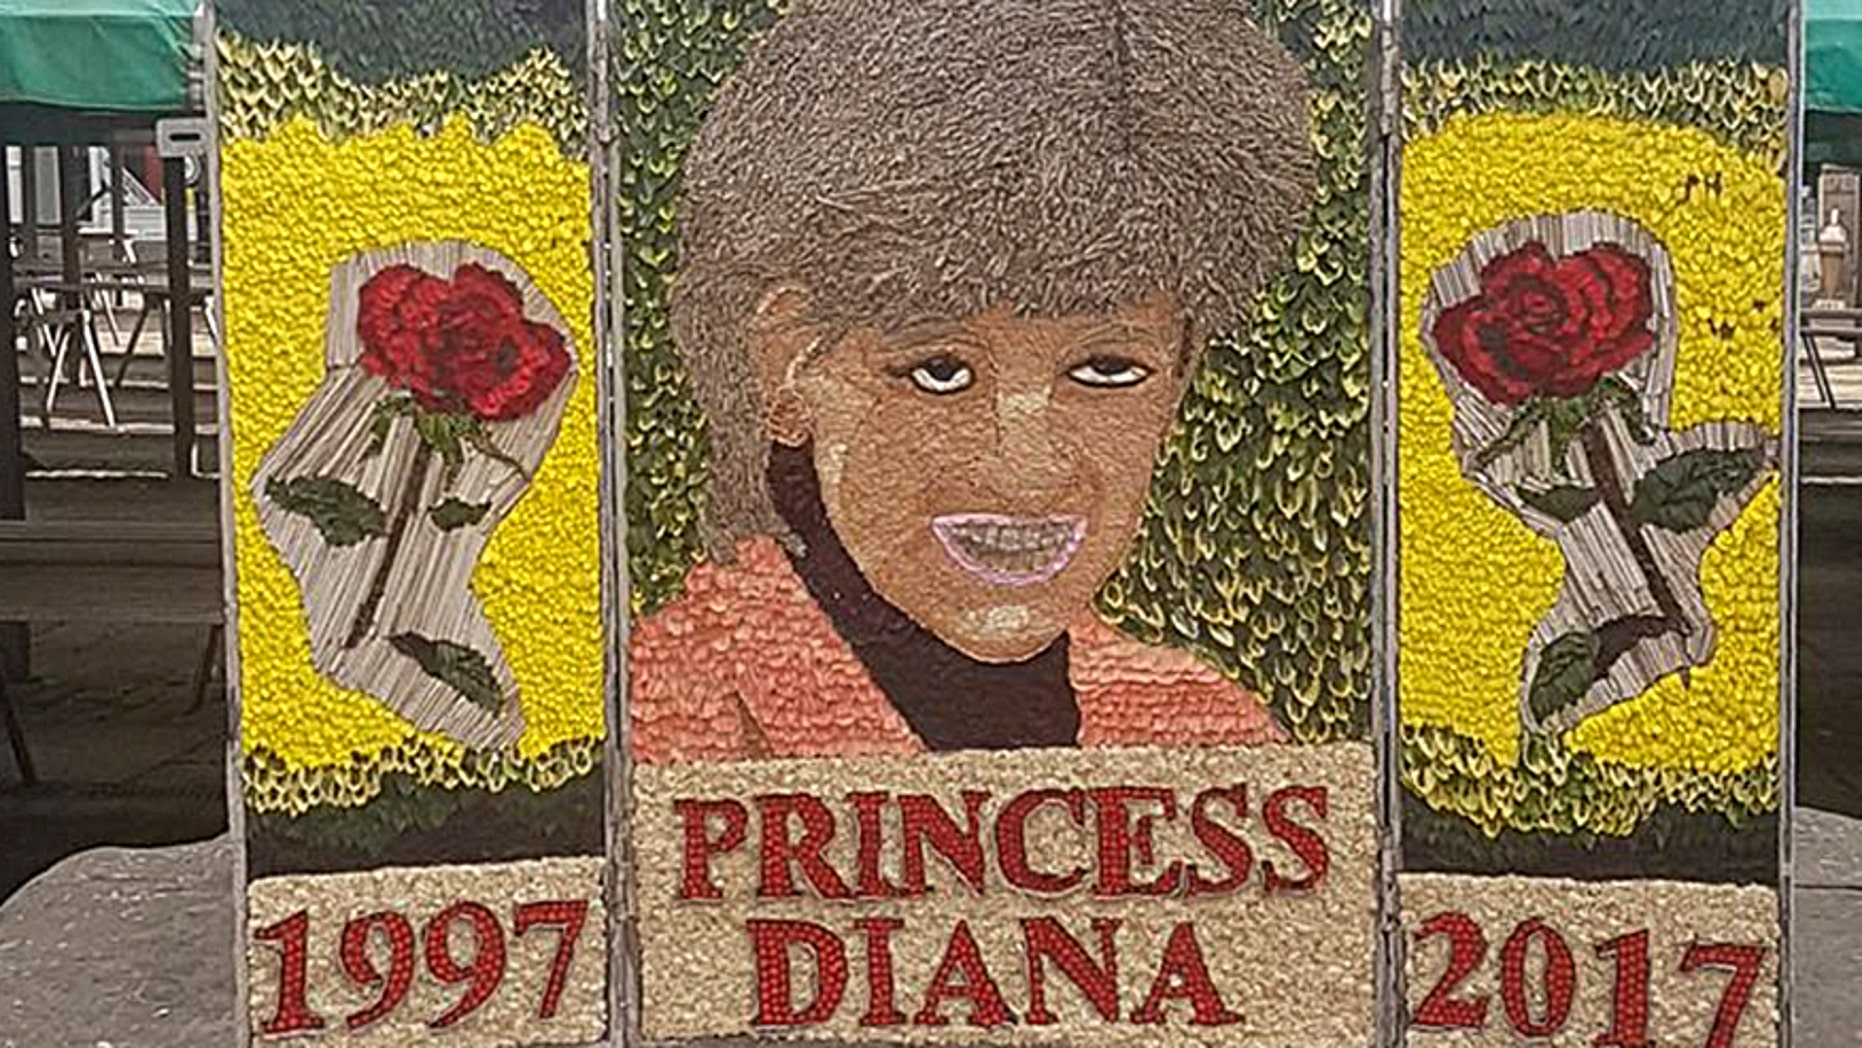 A tribute made in honor of Princess Diana of Wales for the 20th anniversary of her death in the Chesterfield Market Place.